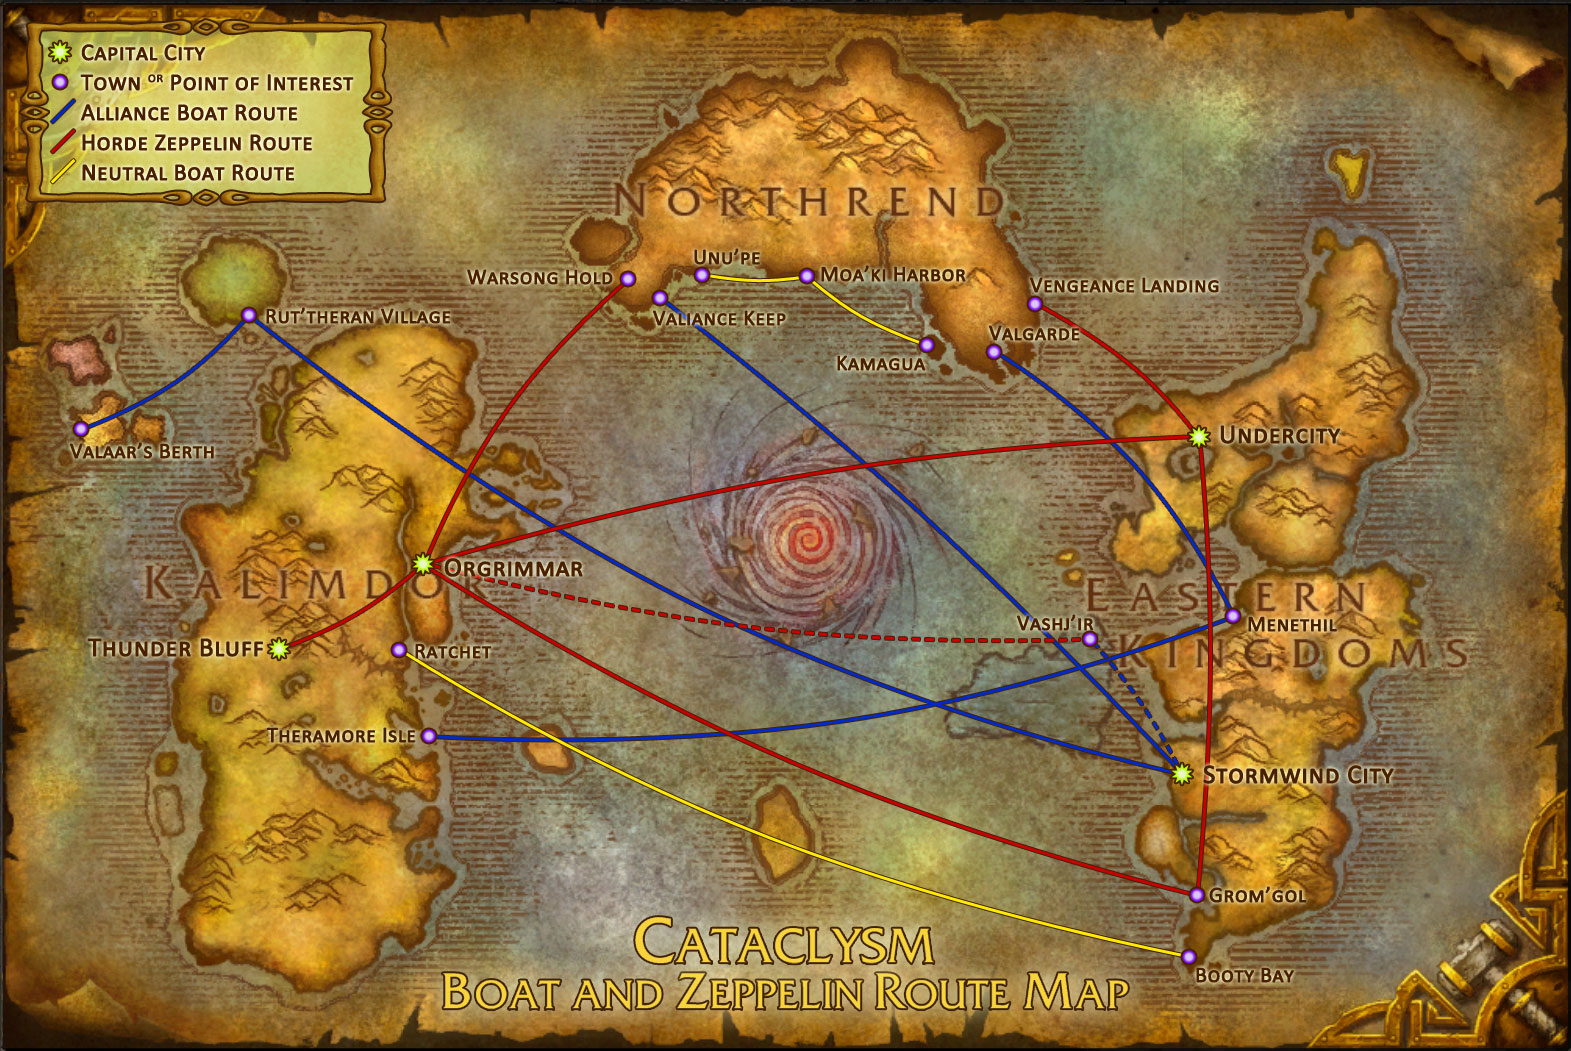 Image world of warcraft cataclysm boat zeppelin route mapg world of warcraft cataclysm boat zeppelin route mapg gumiabroncs Choice Image